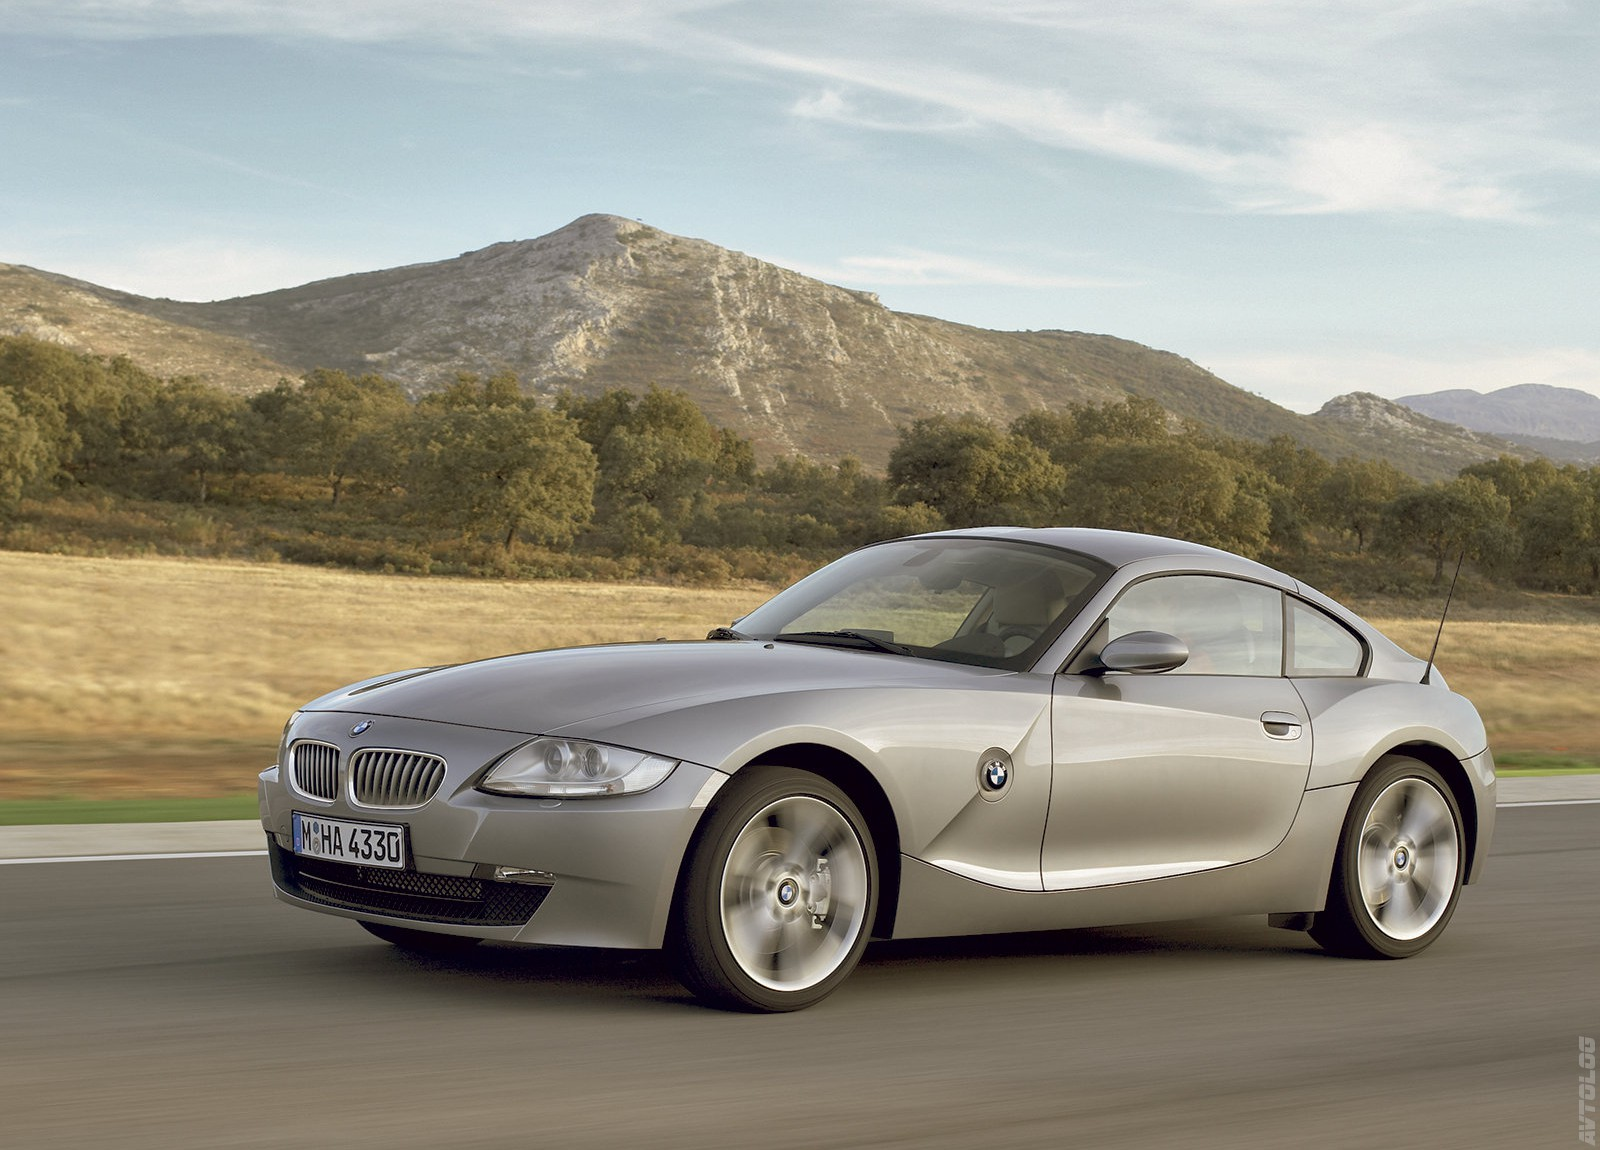 2006 BMW Z4 Coupe Coupe 3-door